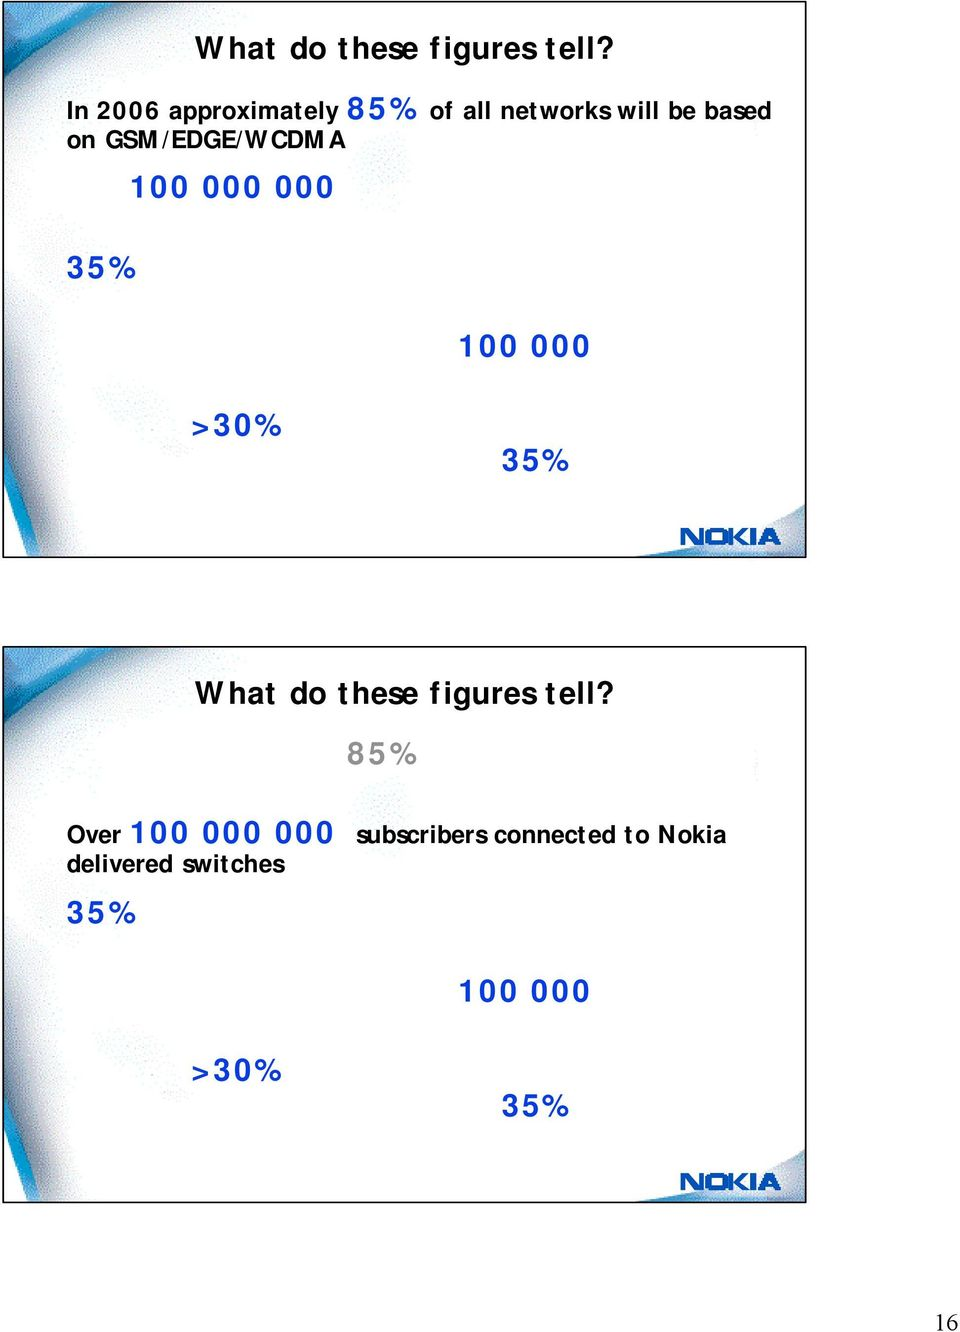 Nokia will deliver approximately 100 000 3G WCDMA carriers in 2002 Nokia has >30% market share in 3G Nokia is well on its way to reach its 35% market share target  In 2006 approximately 85% of all